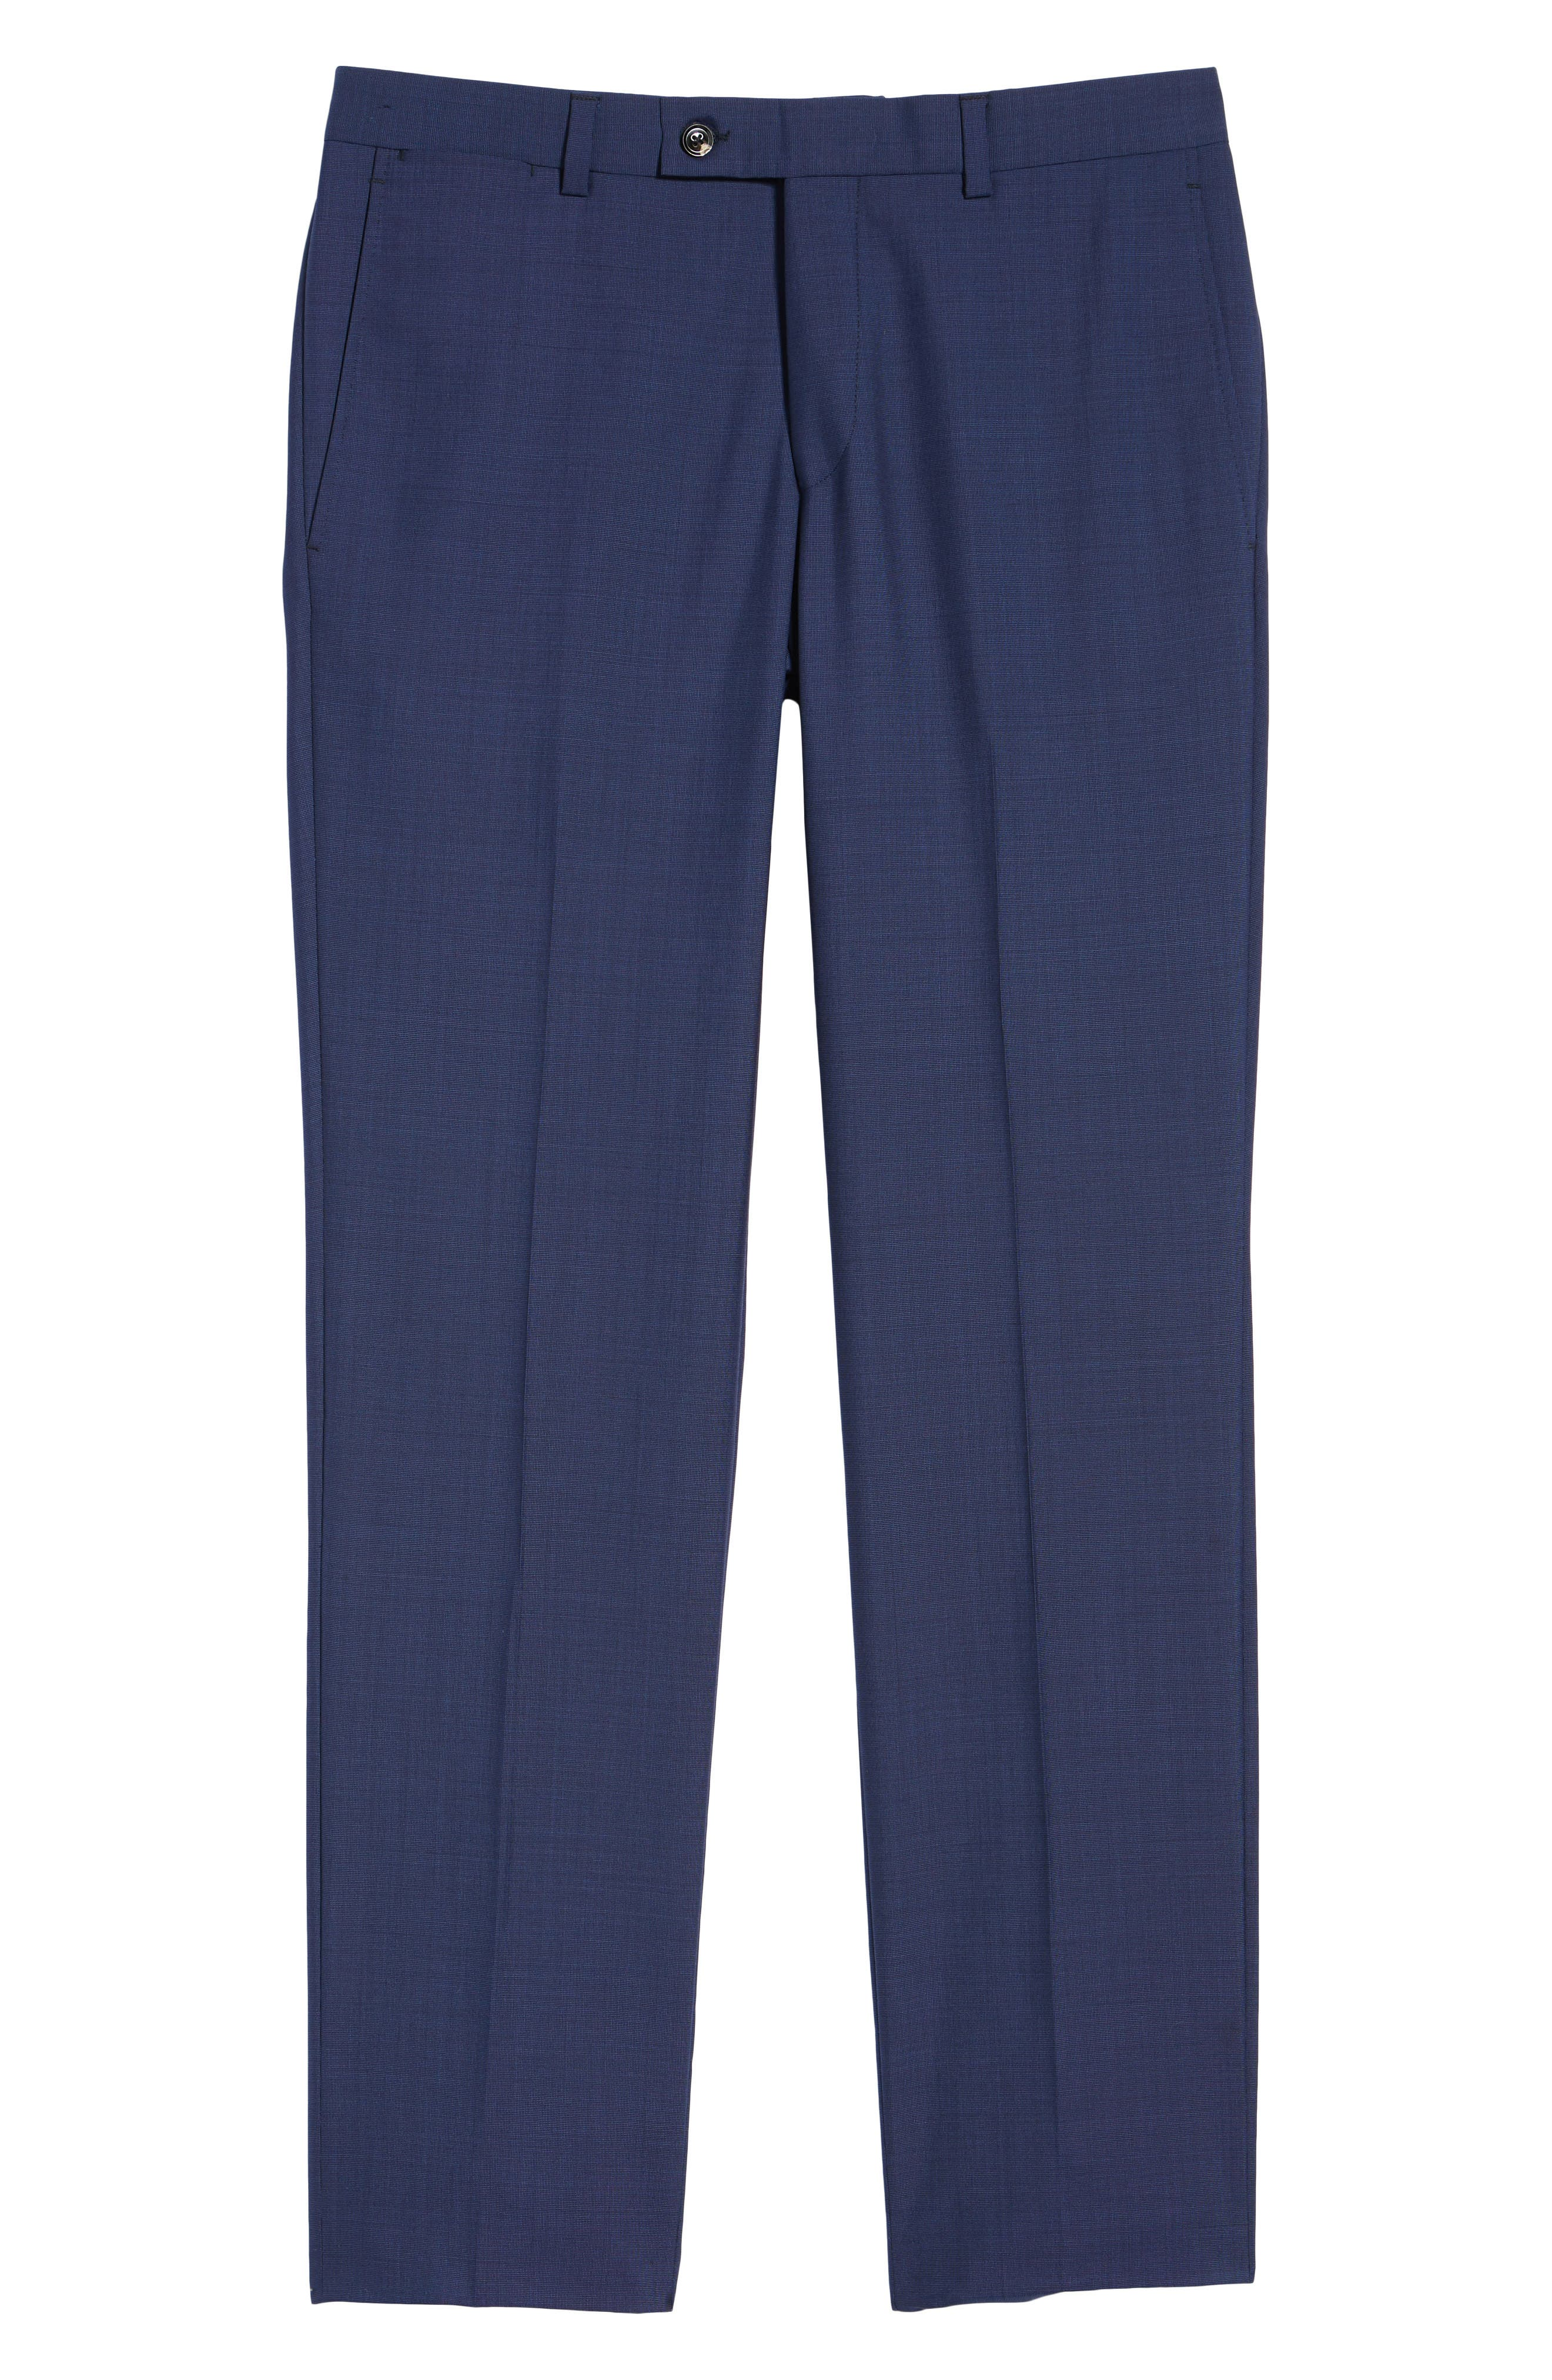 Jefferson Flat Front Solid Wool Trousers,                             Alternate thumbnail 7, color,                             BLUE